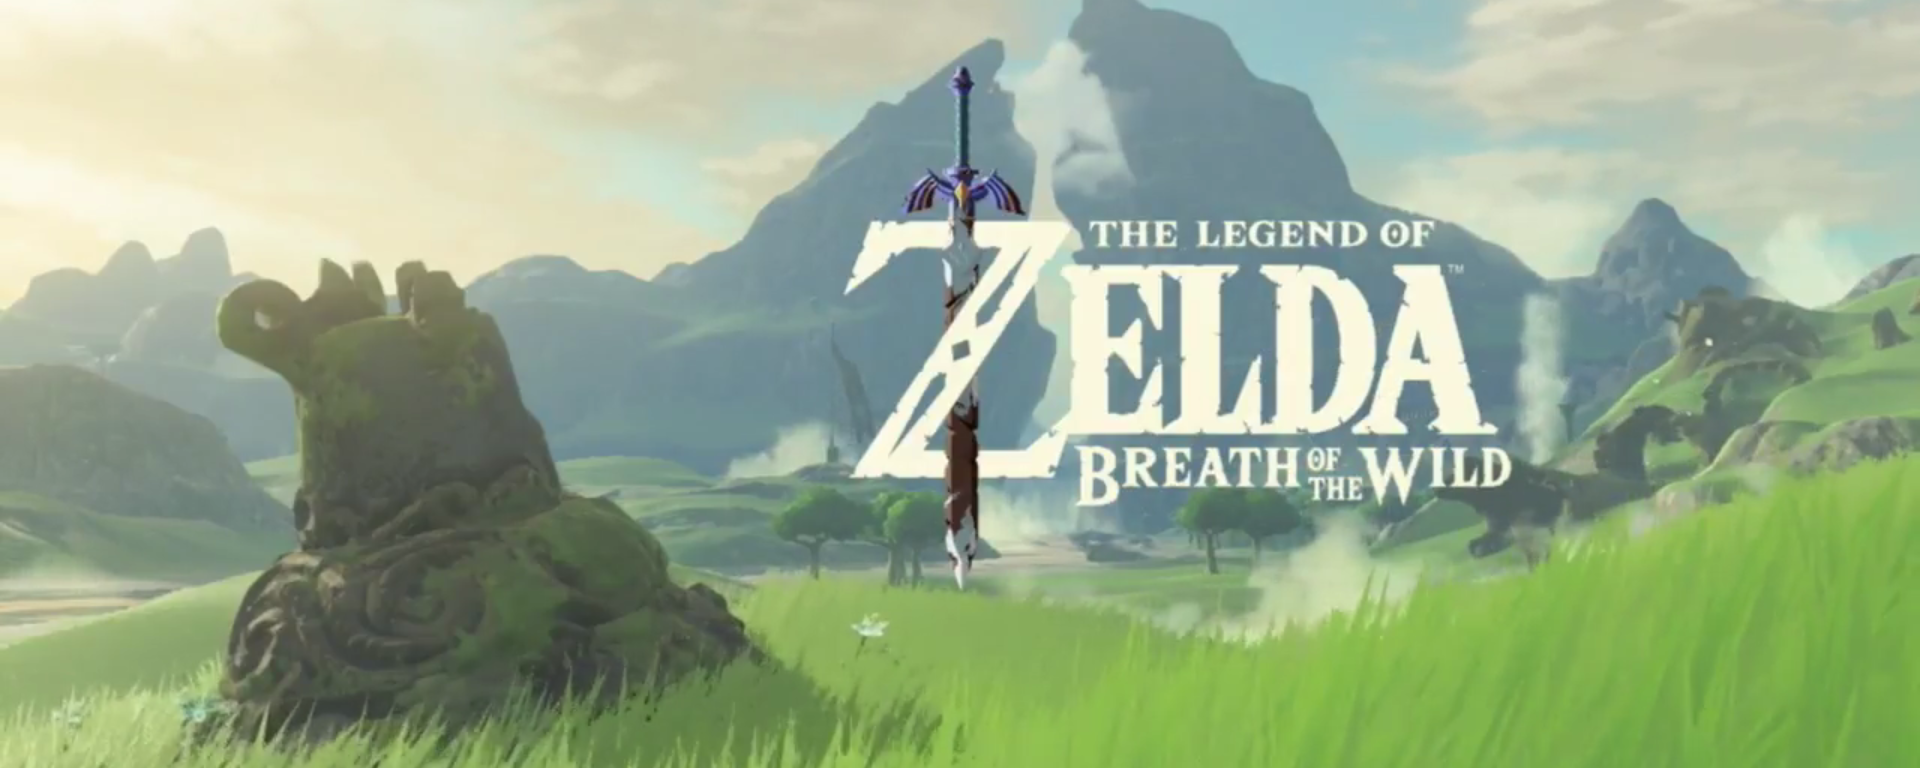 The Legend Of Zelda: Breath Of The Wild Expansion Pass Announced